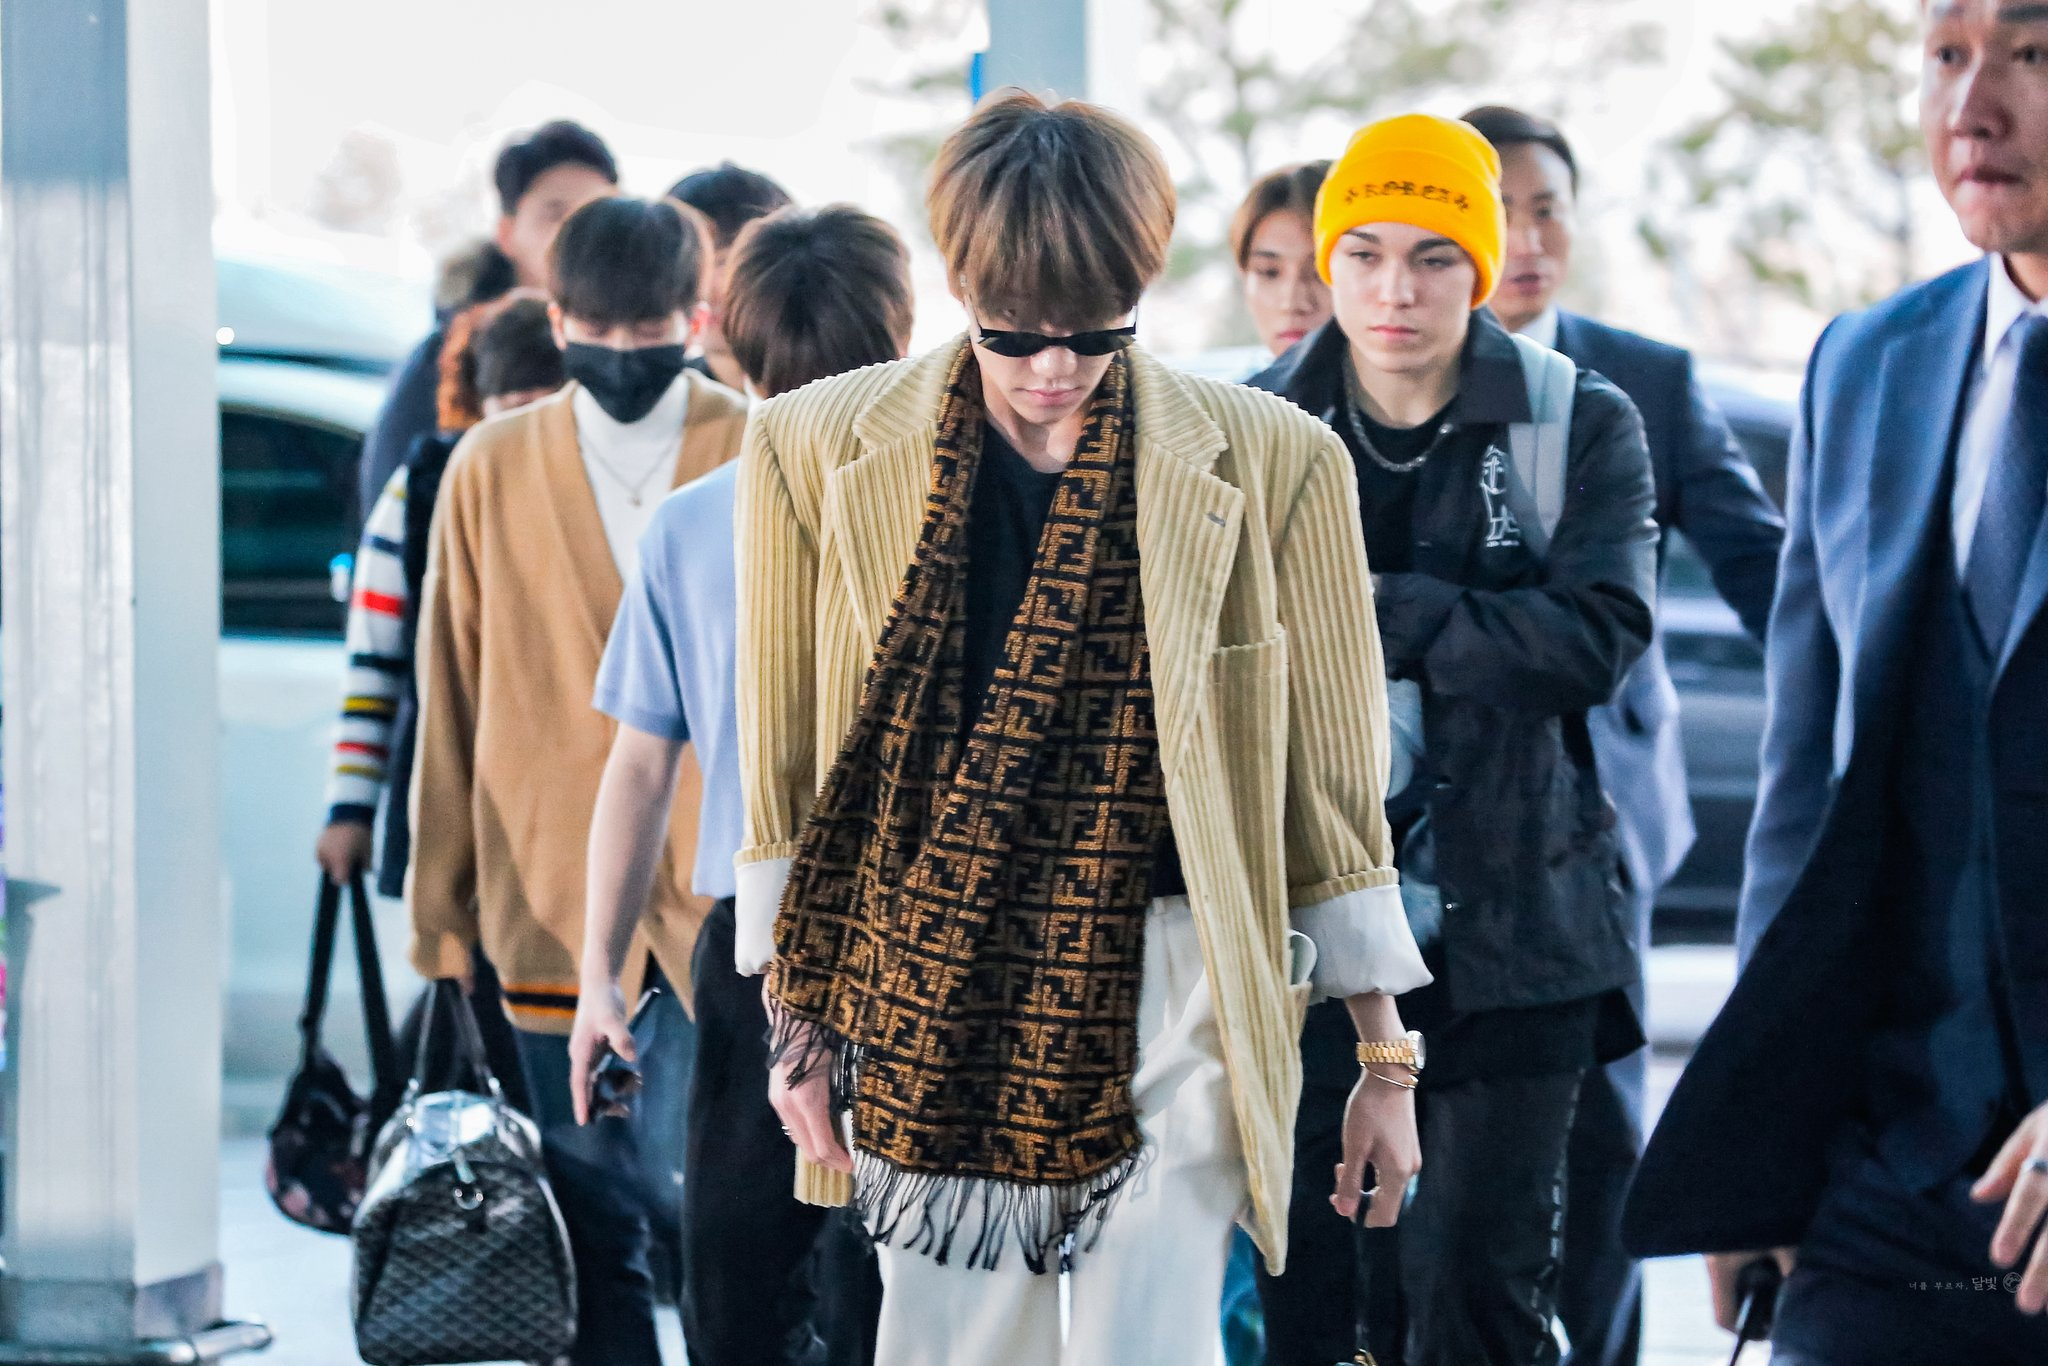 SEVENTEEN's The8 Caught Eyes With Cool Airport Fashion